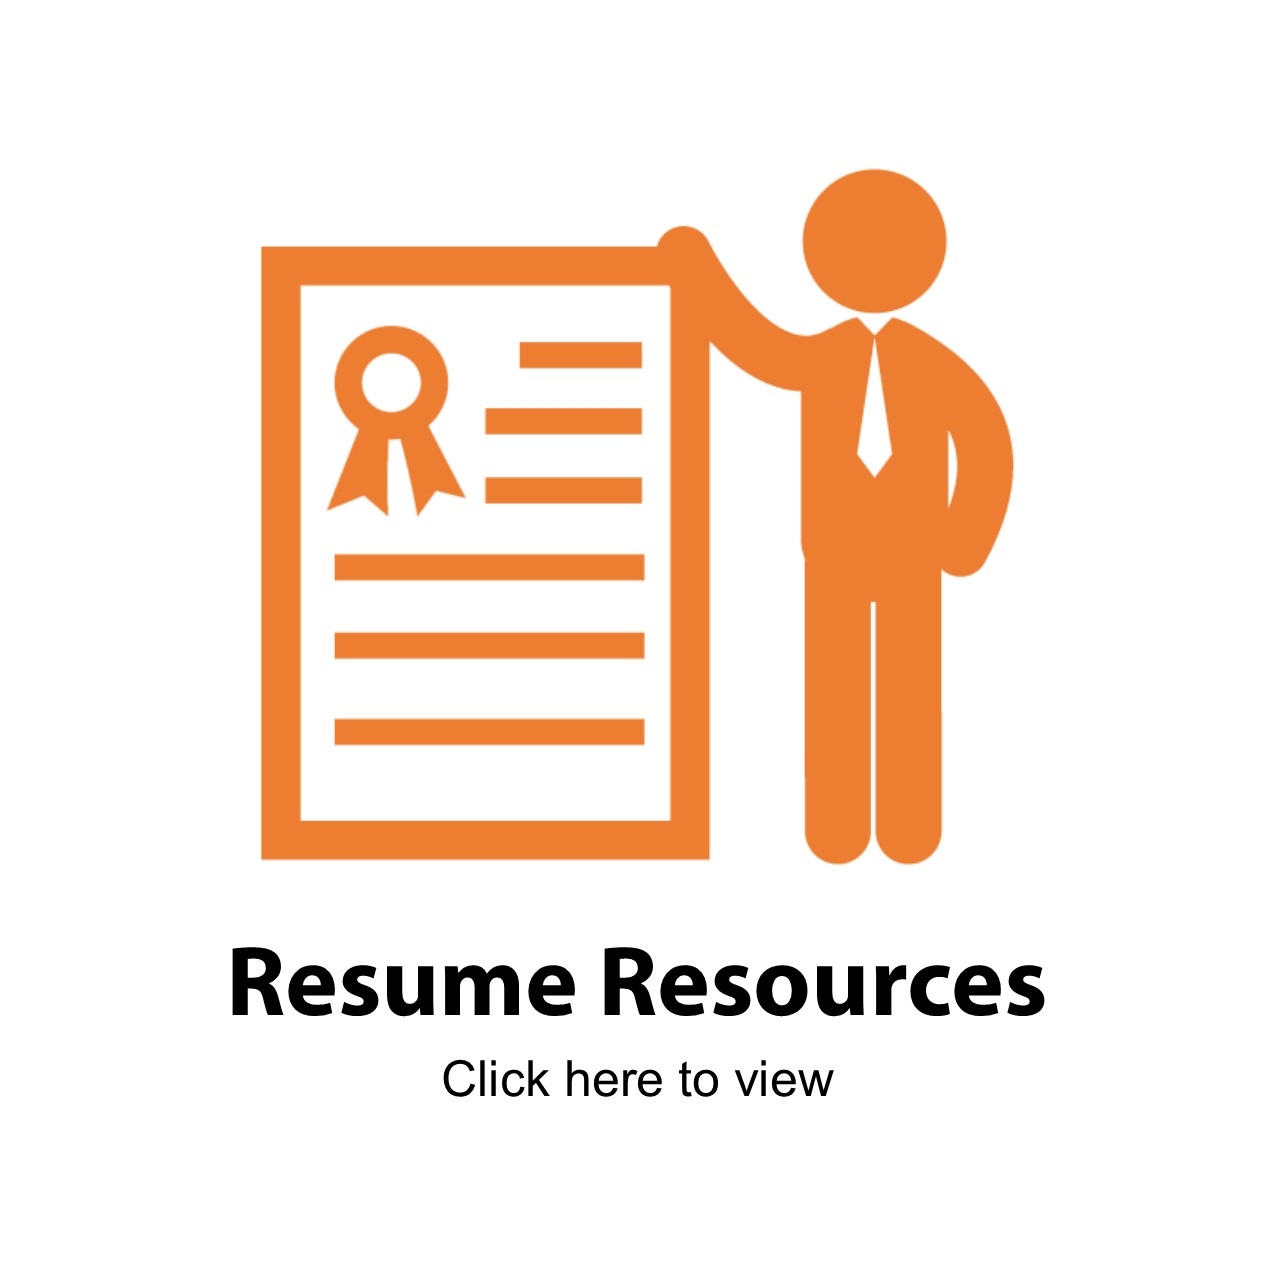 uncc resume builder uncc resume builder room career center nmc community chapter toastmasters job search guidelines